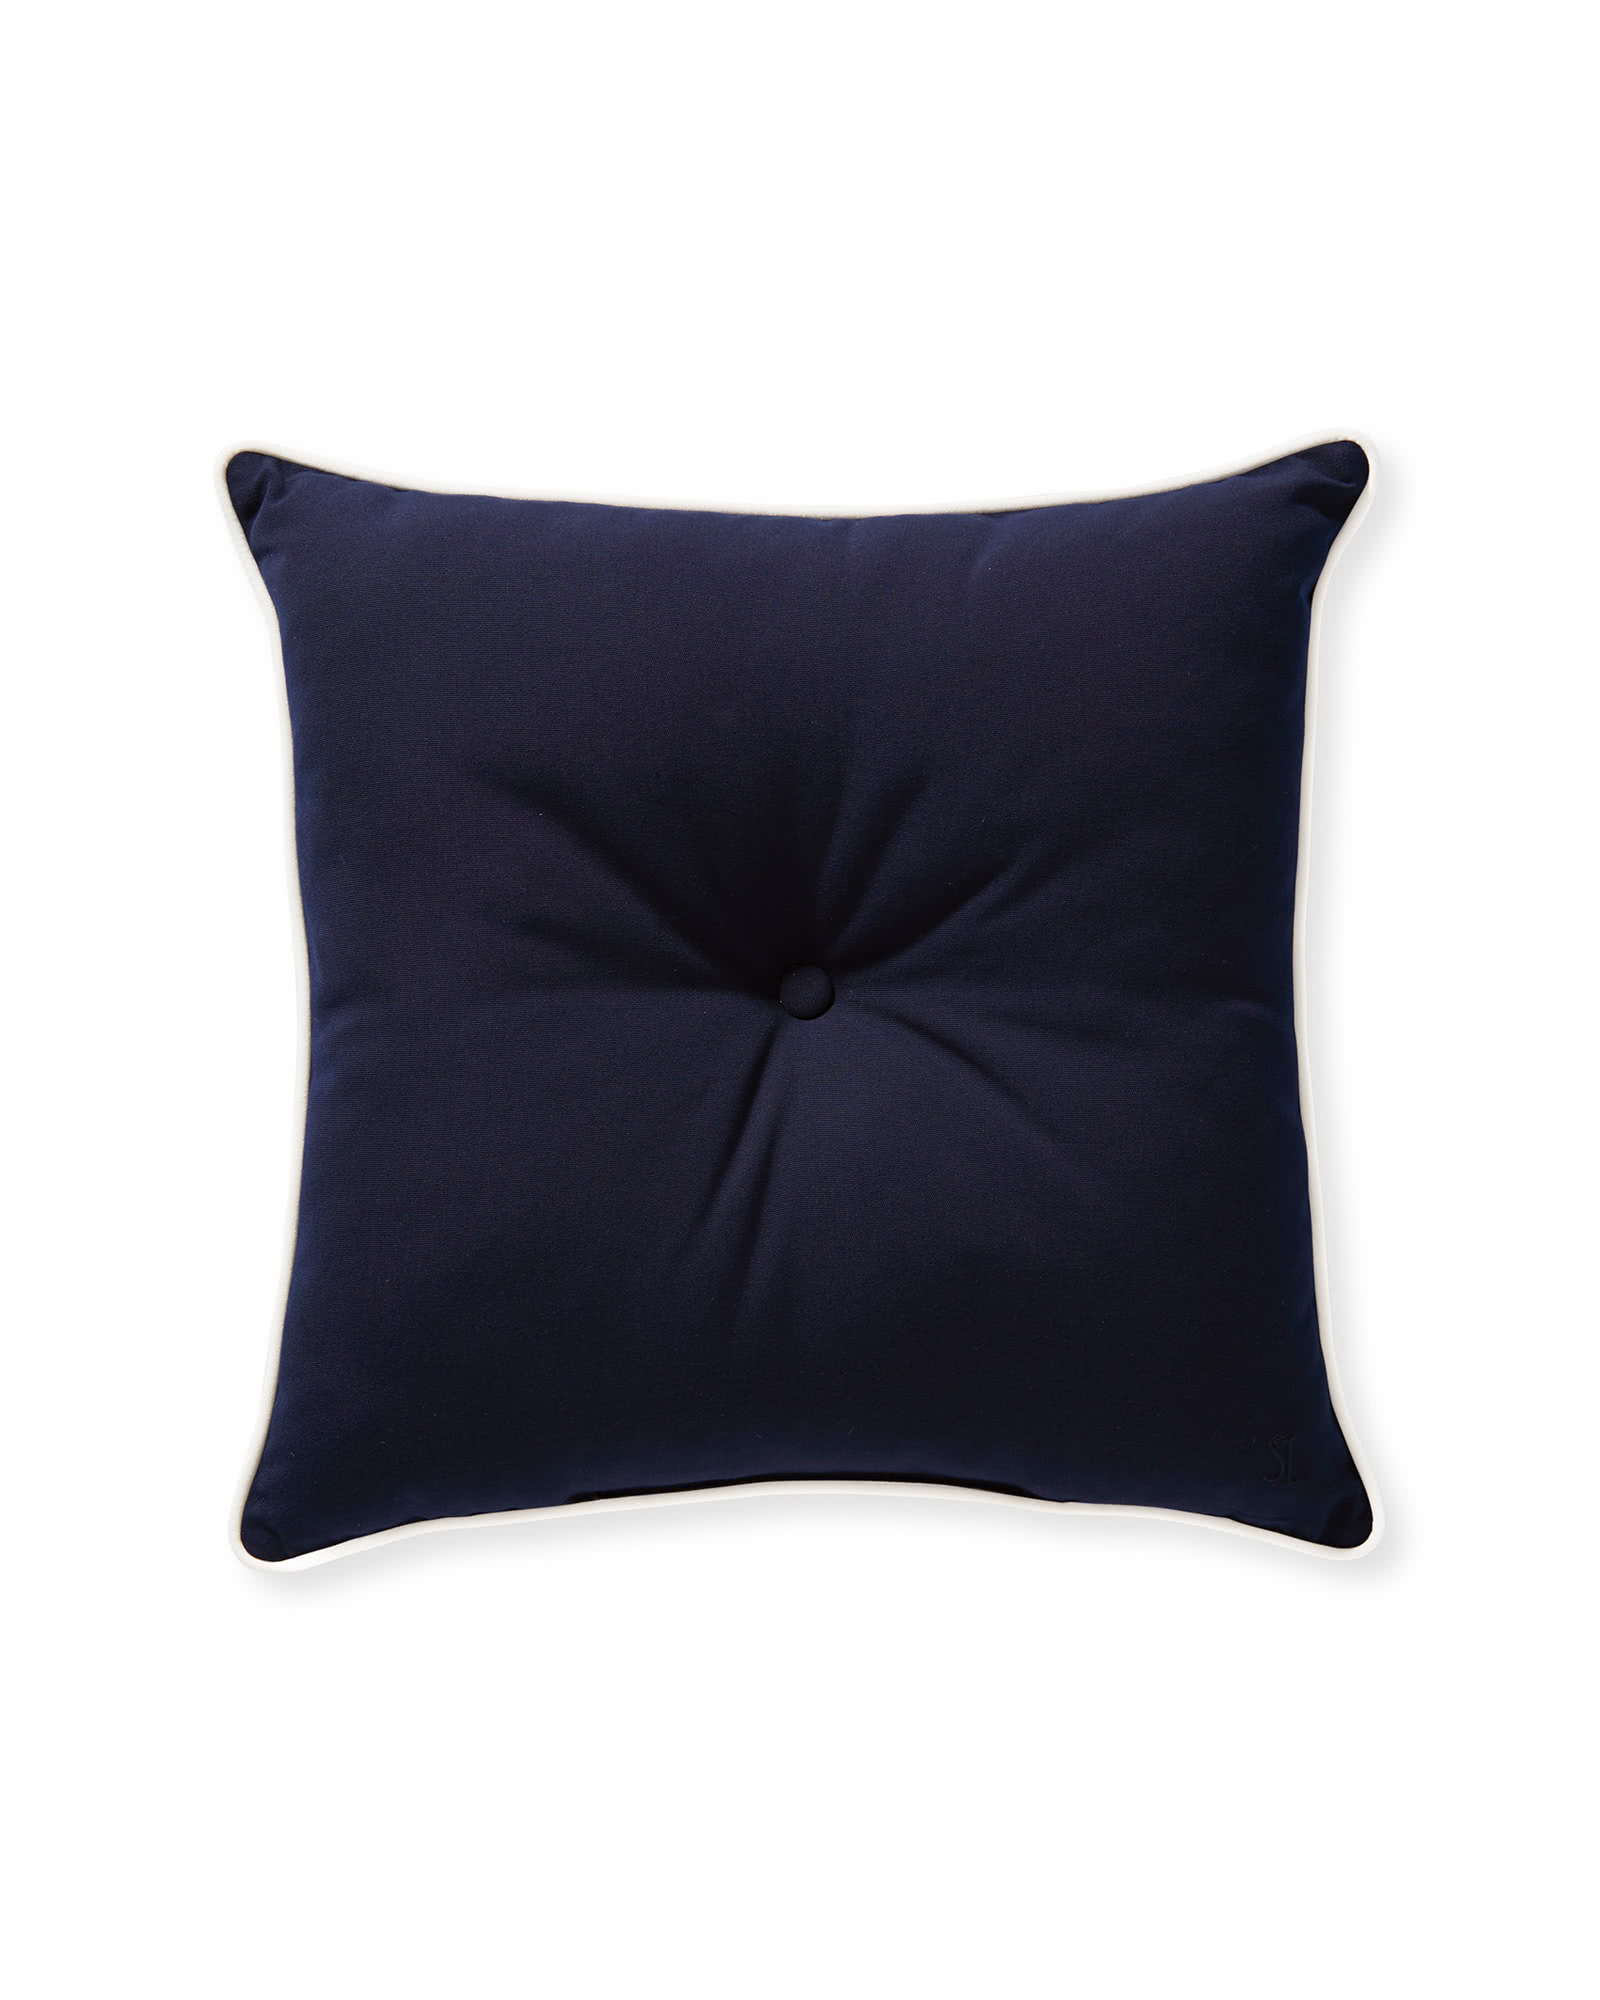 Lido Pillow, Navy